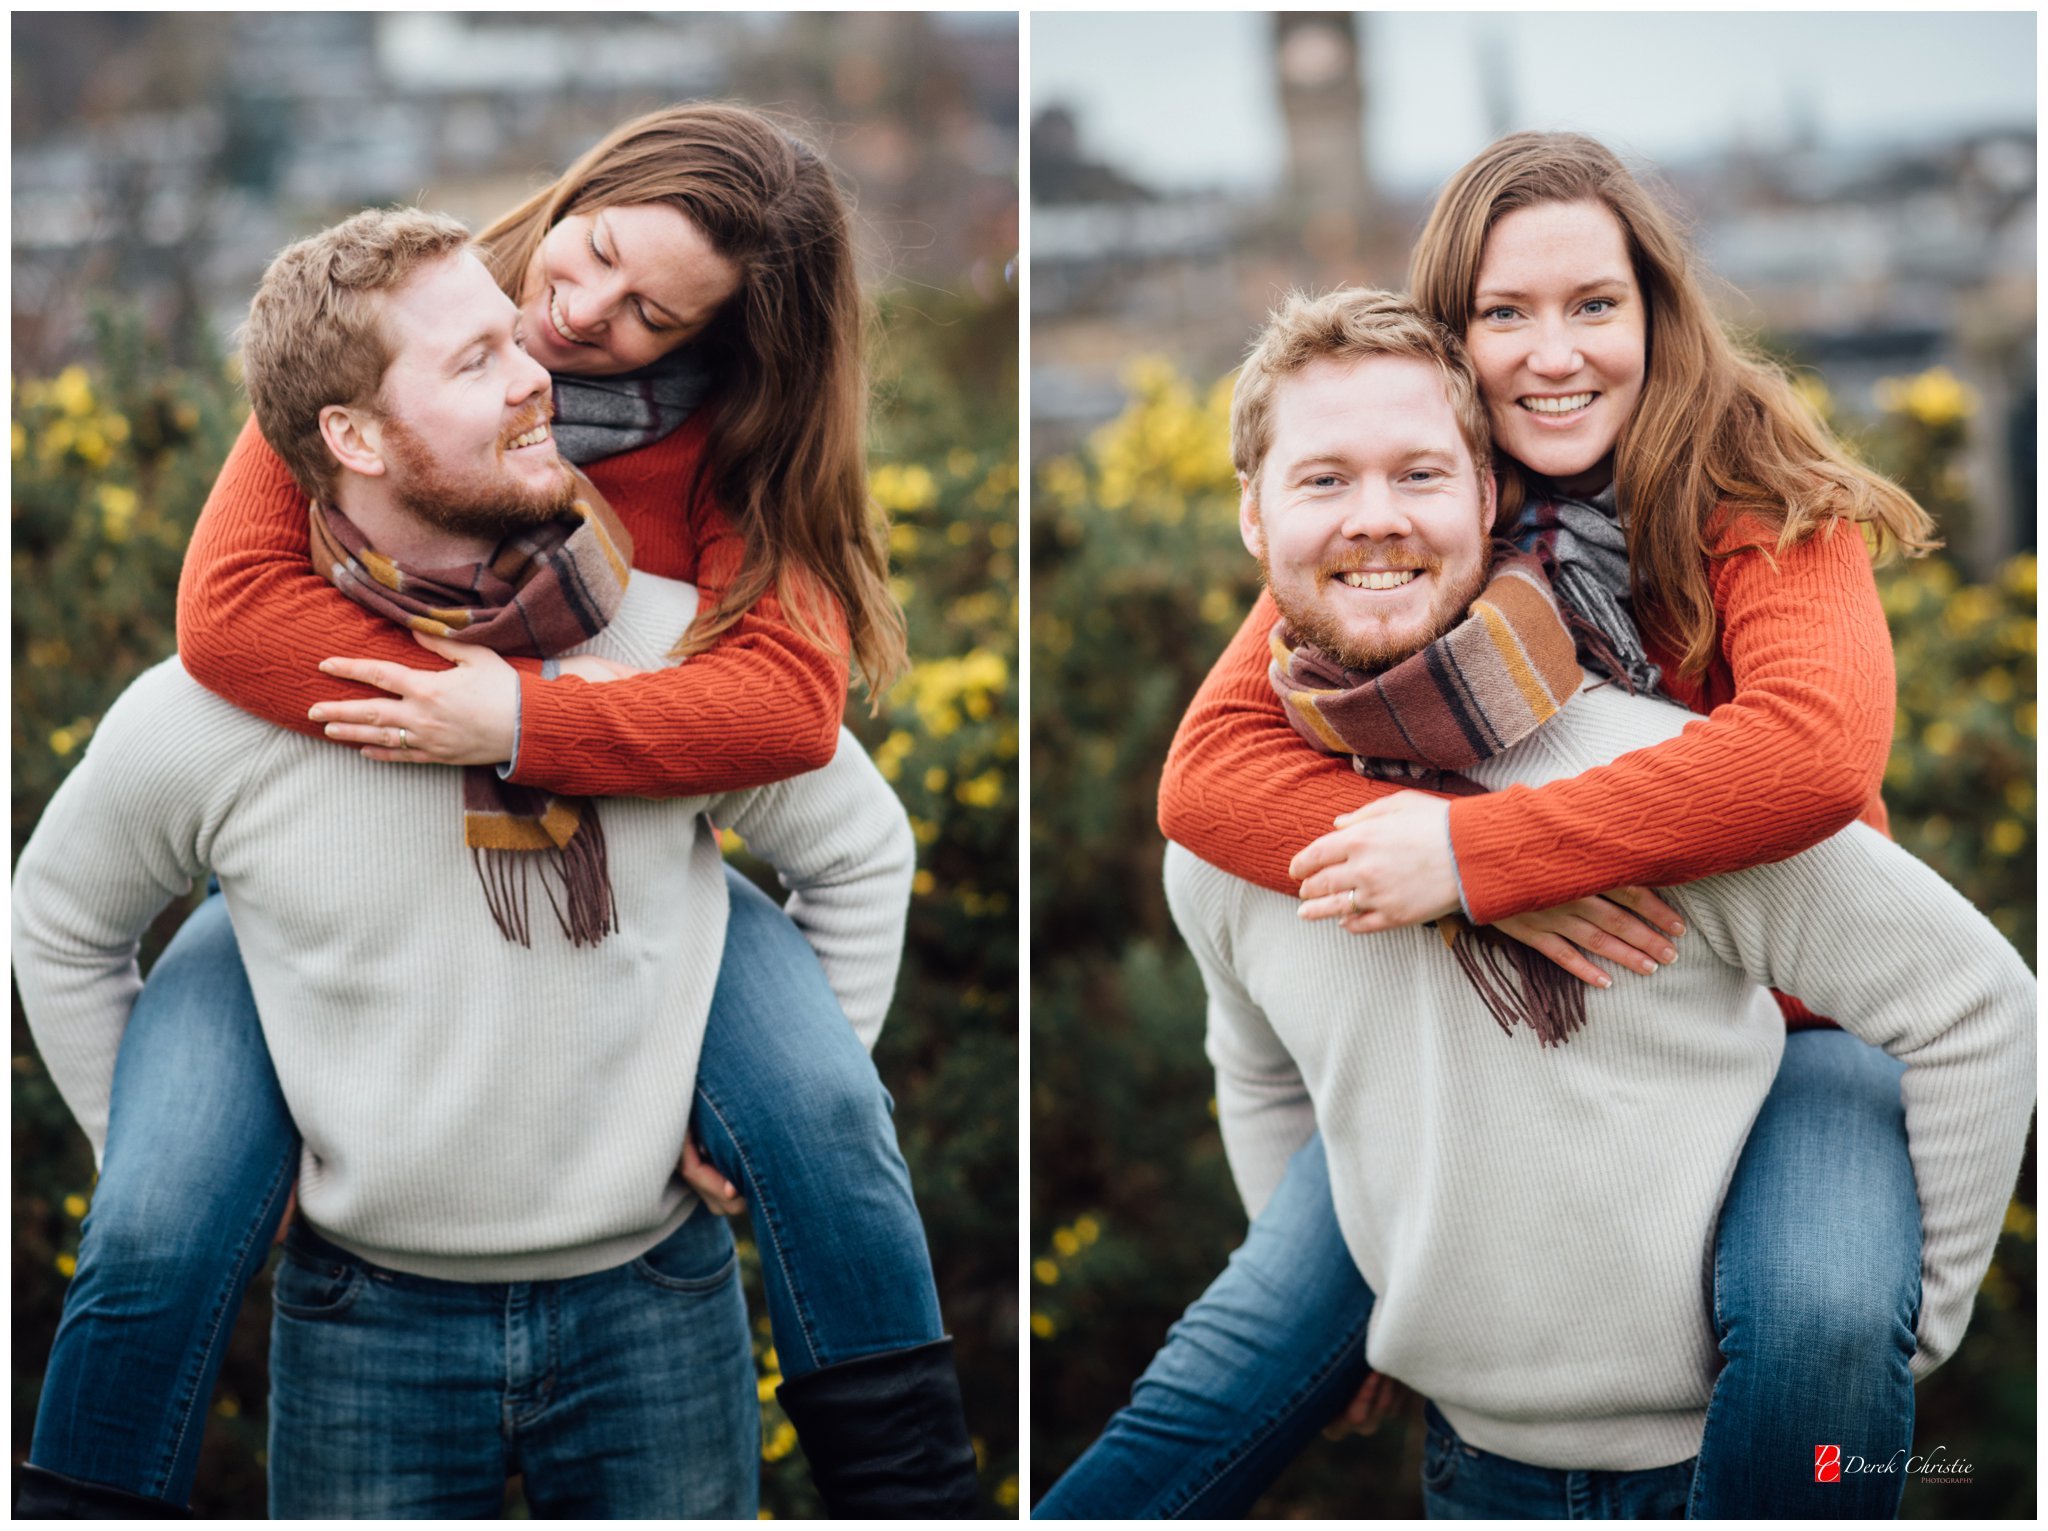 Simone & Aiden's E-Session-59.jpg